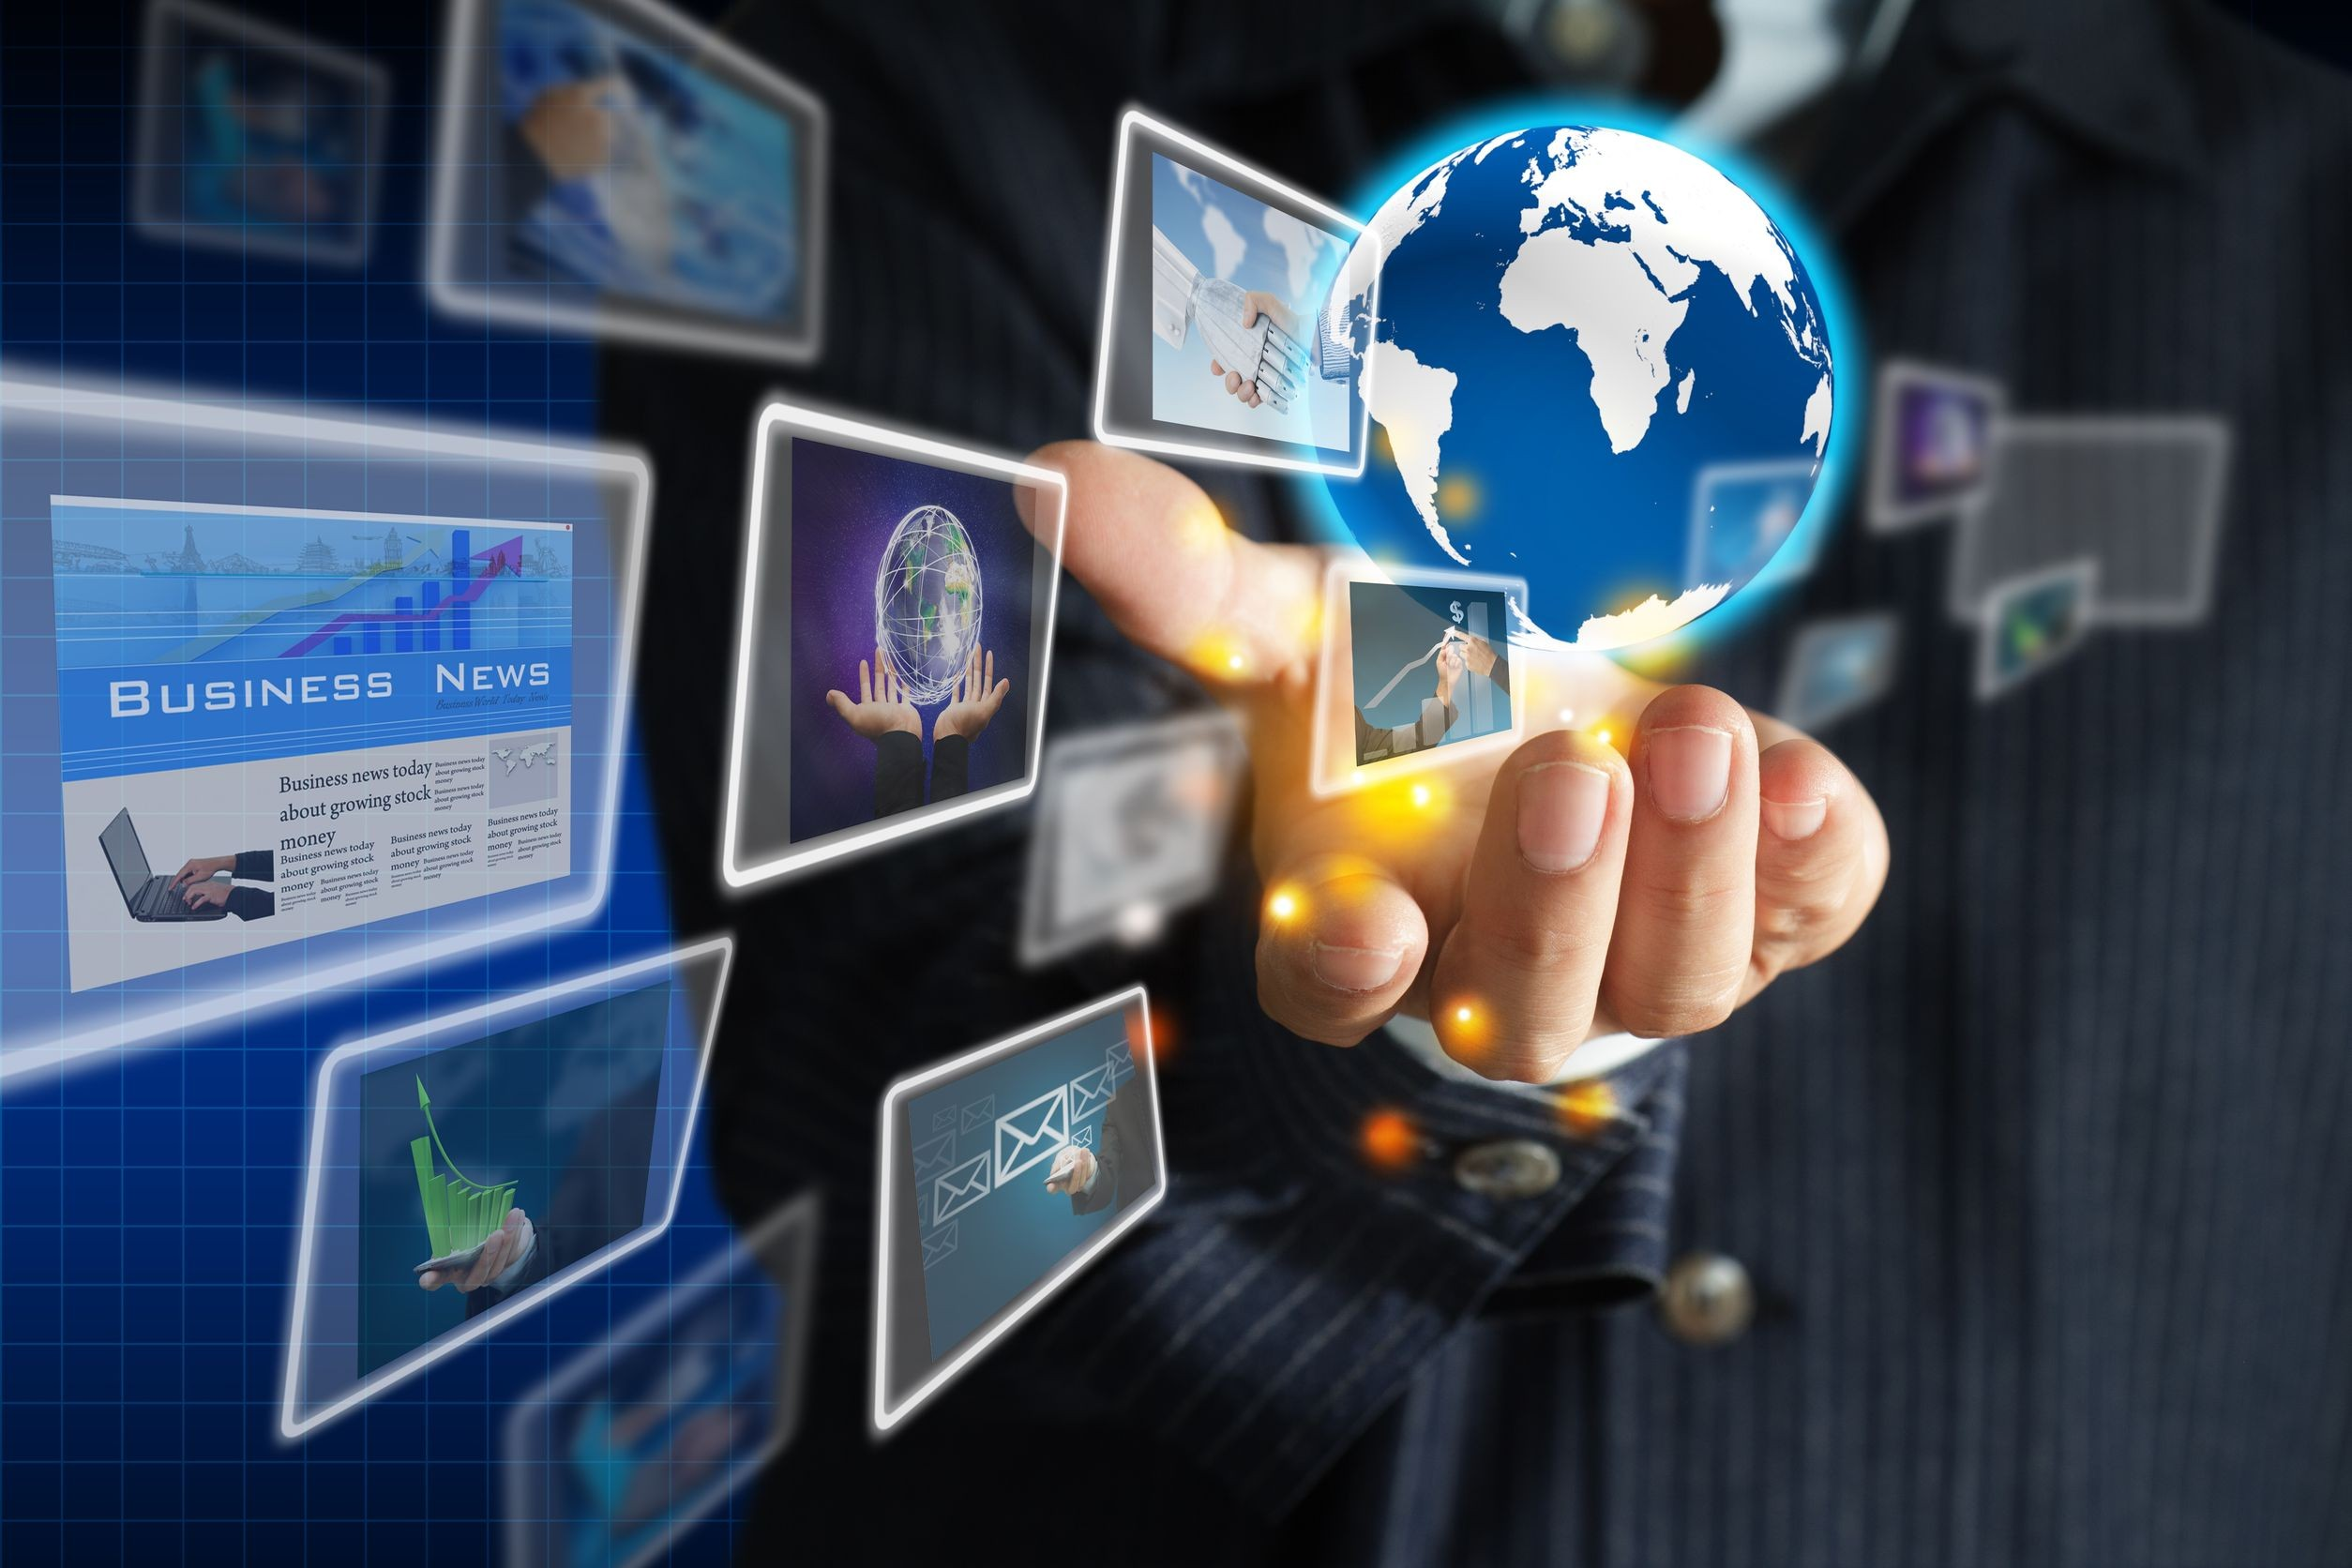 The Role of Information and Communication Technology in the Era of Globalization